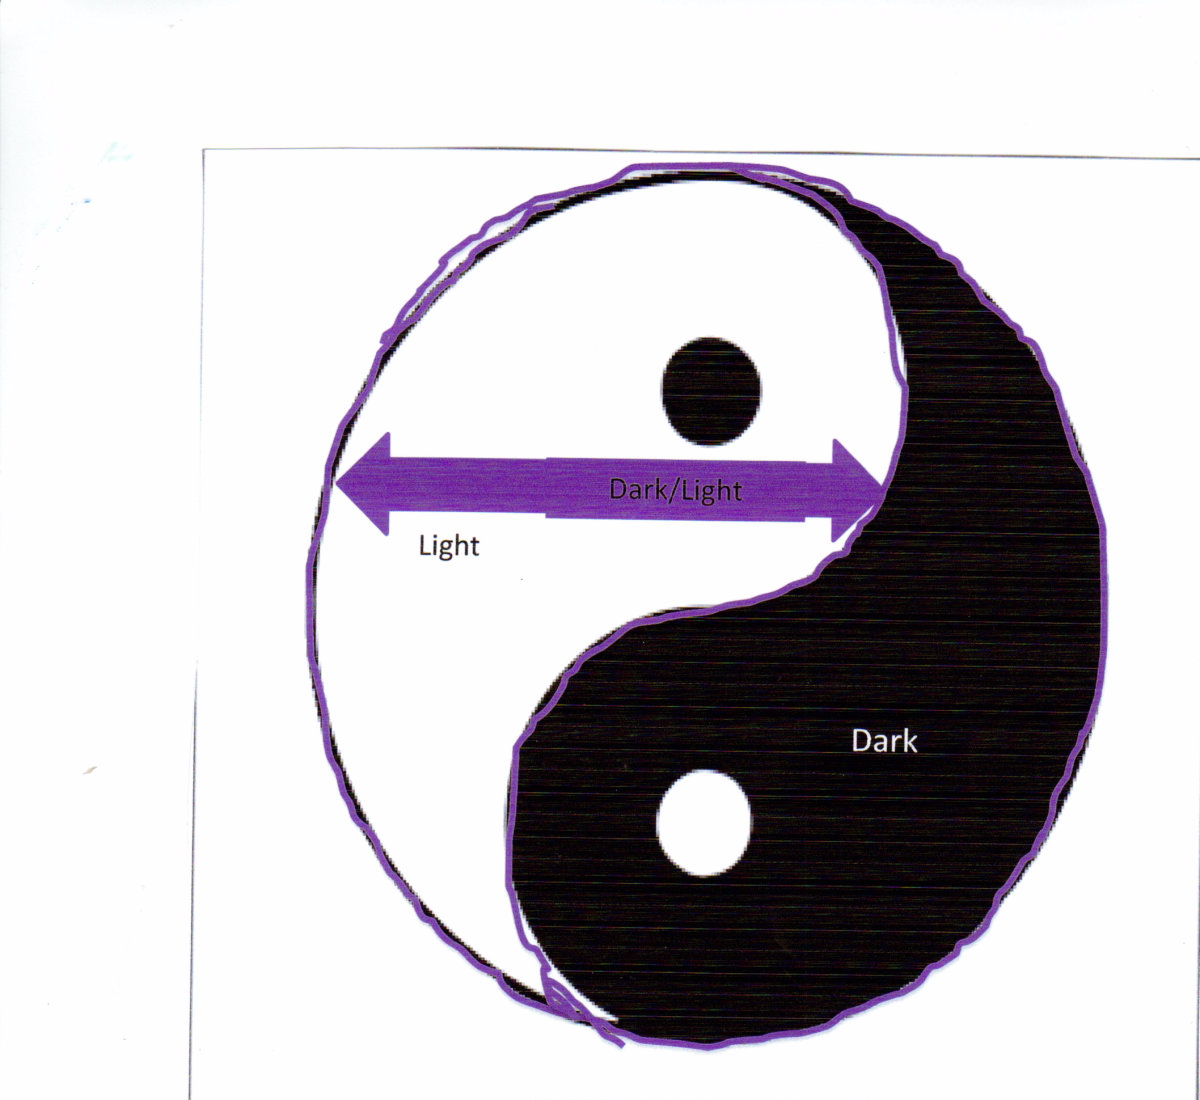 The purple surrounding the yin yang is the dark/light of the yin yang.